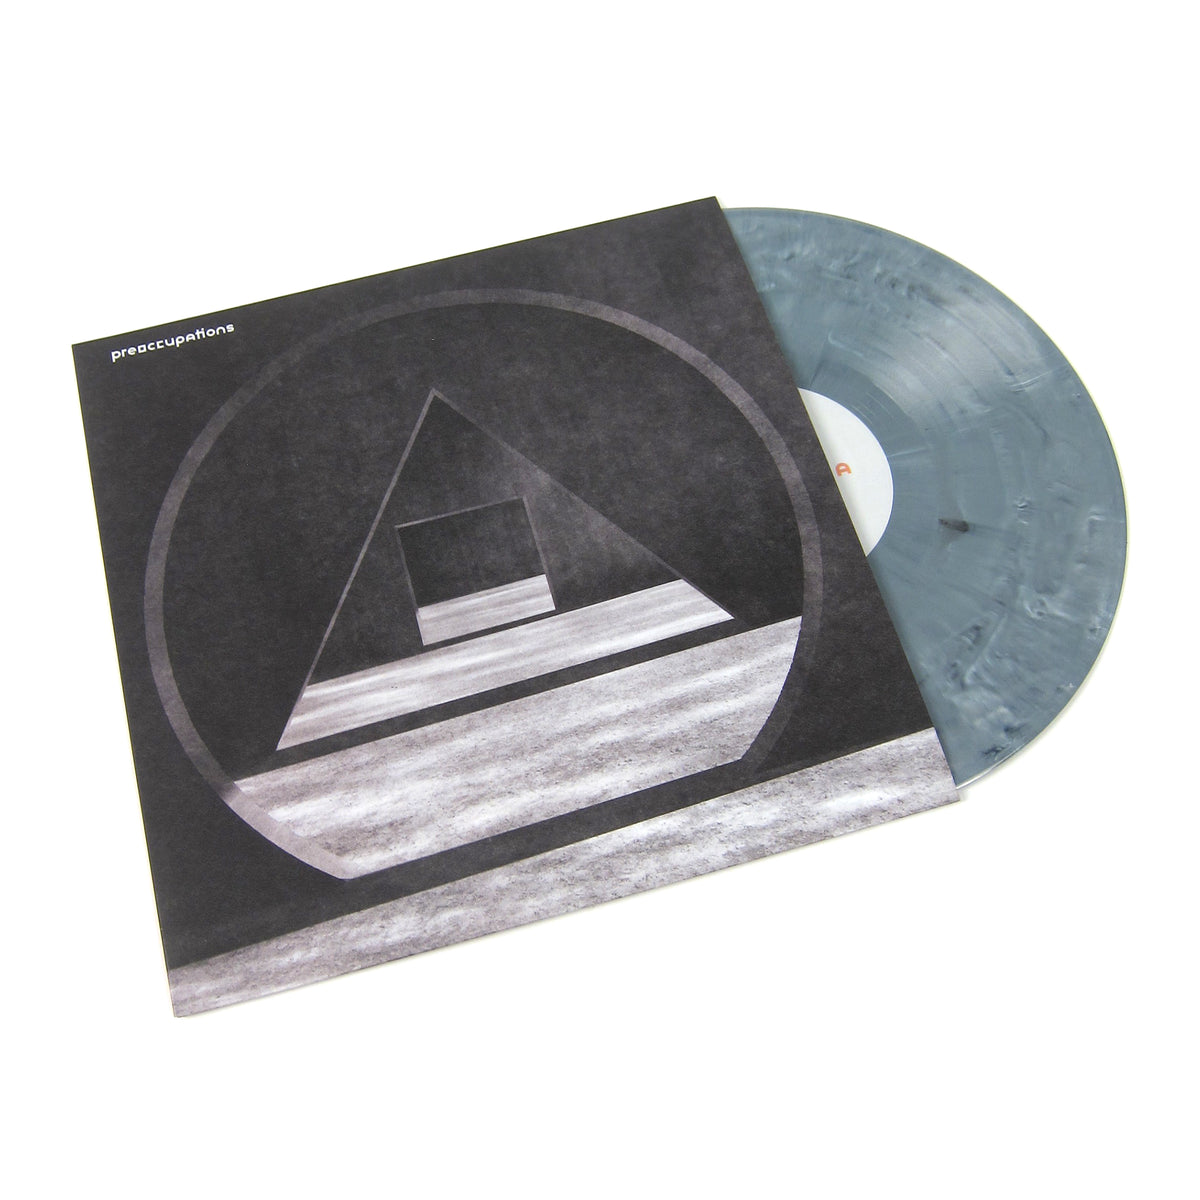 Preoccupations: New Material (Colored Vinyl) Vinyl LP